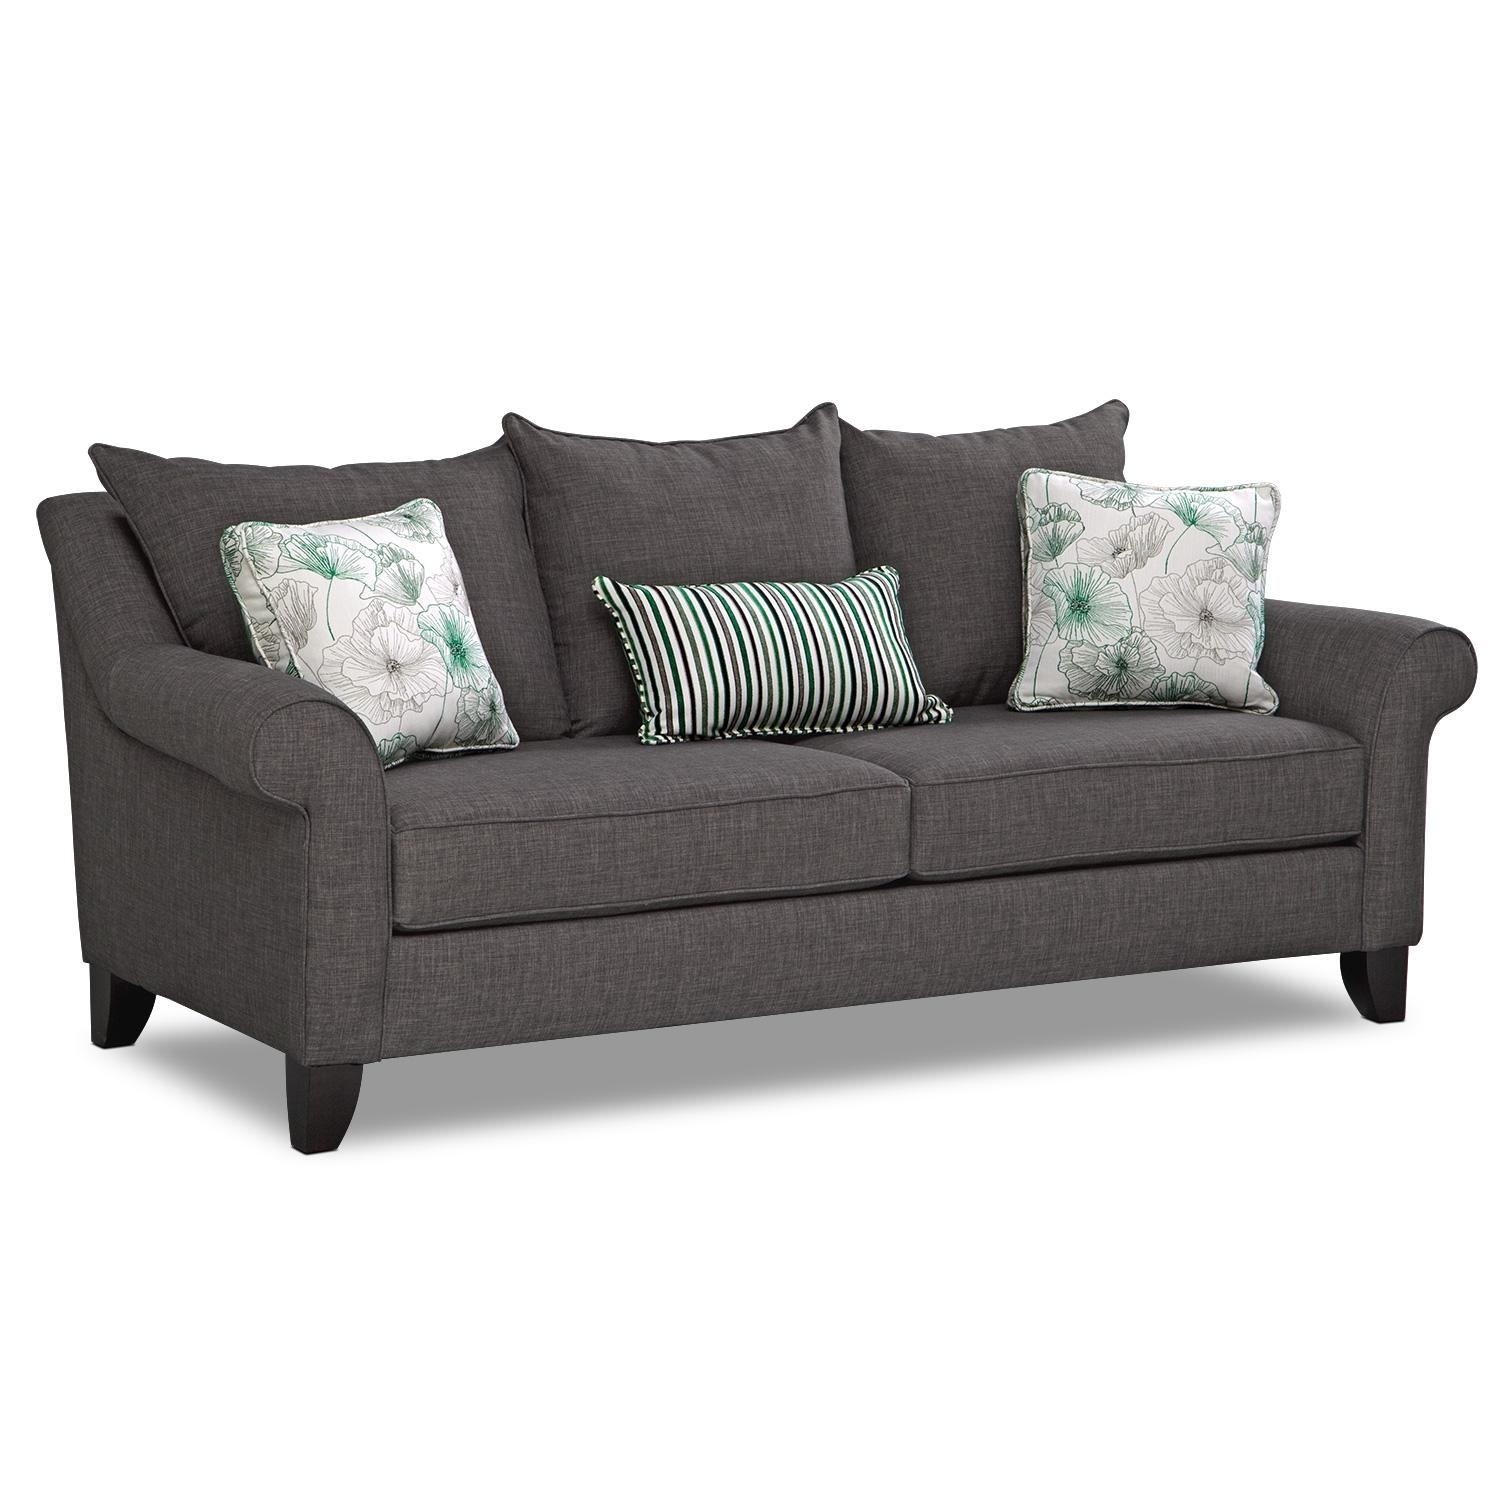 Sofas Center : Brilliant Queen Size Sofa Sleeper Best Living Room Pertaining To Sofa Sleepers Queen Size (Image 16 of 20)